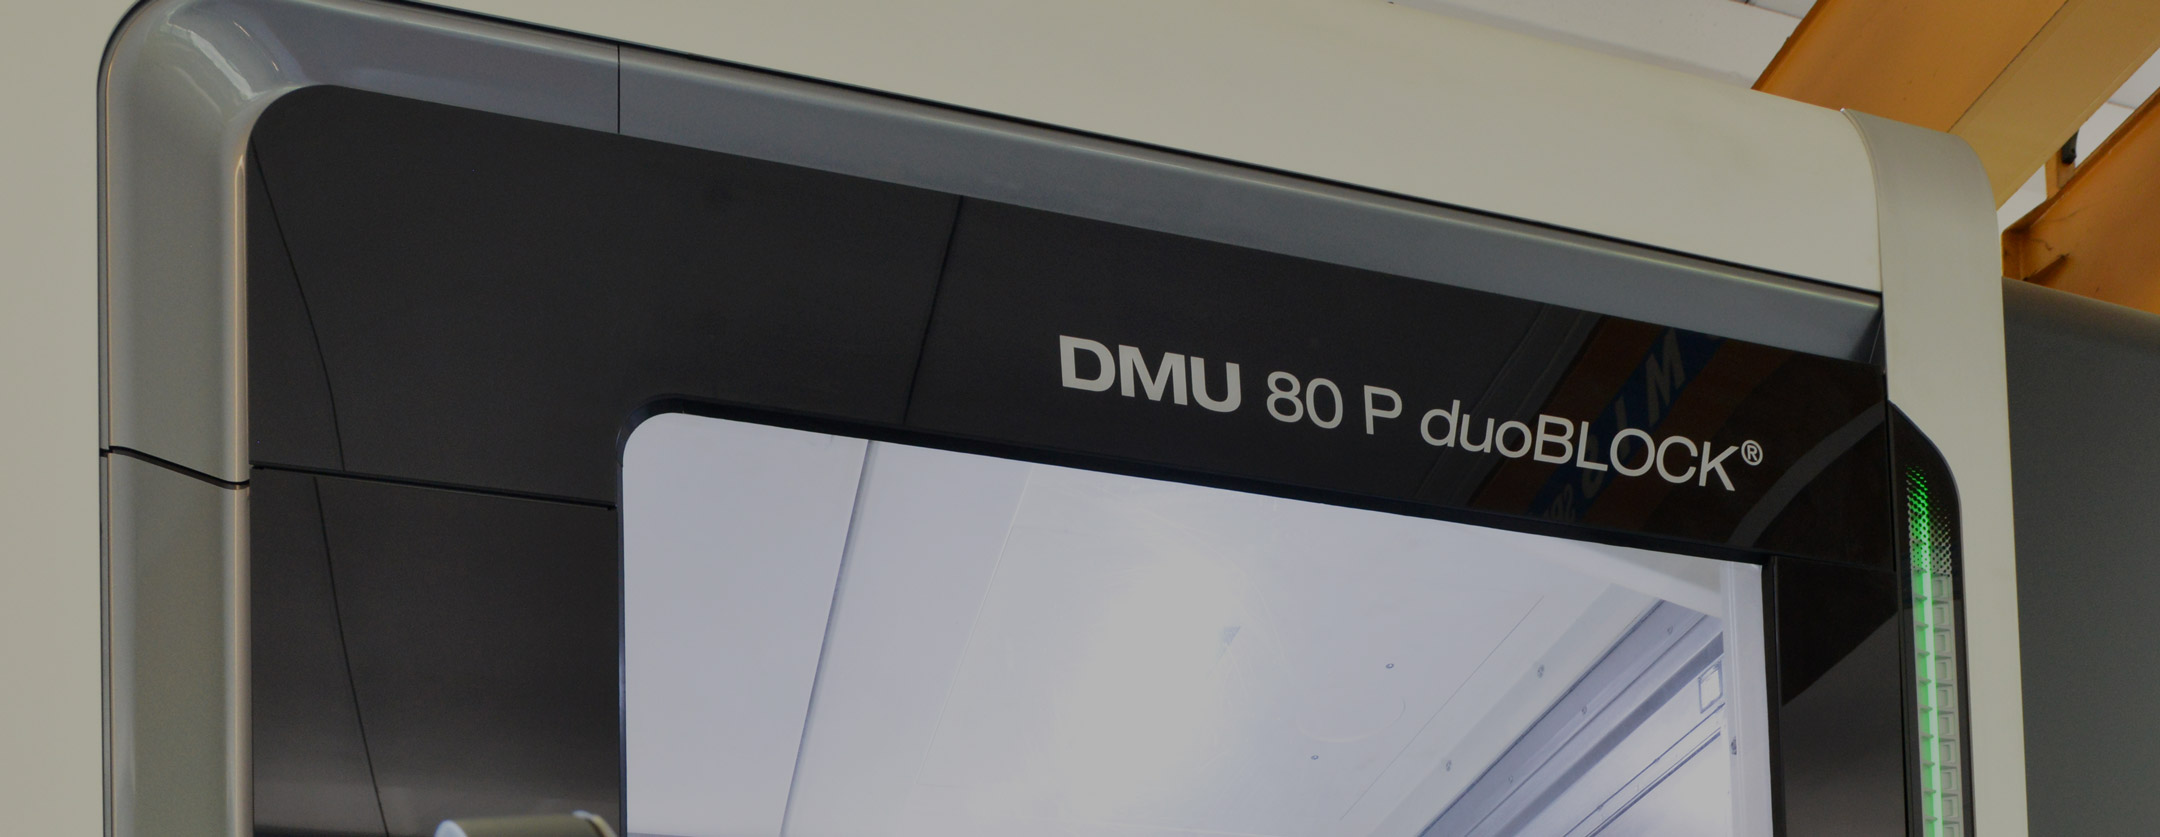 New 5 axis milling centre DMU80 DUOBLOCK